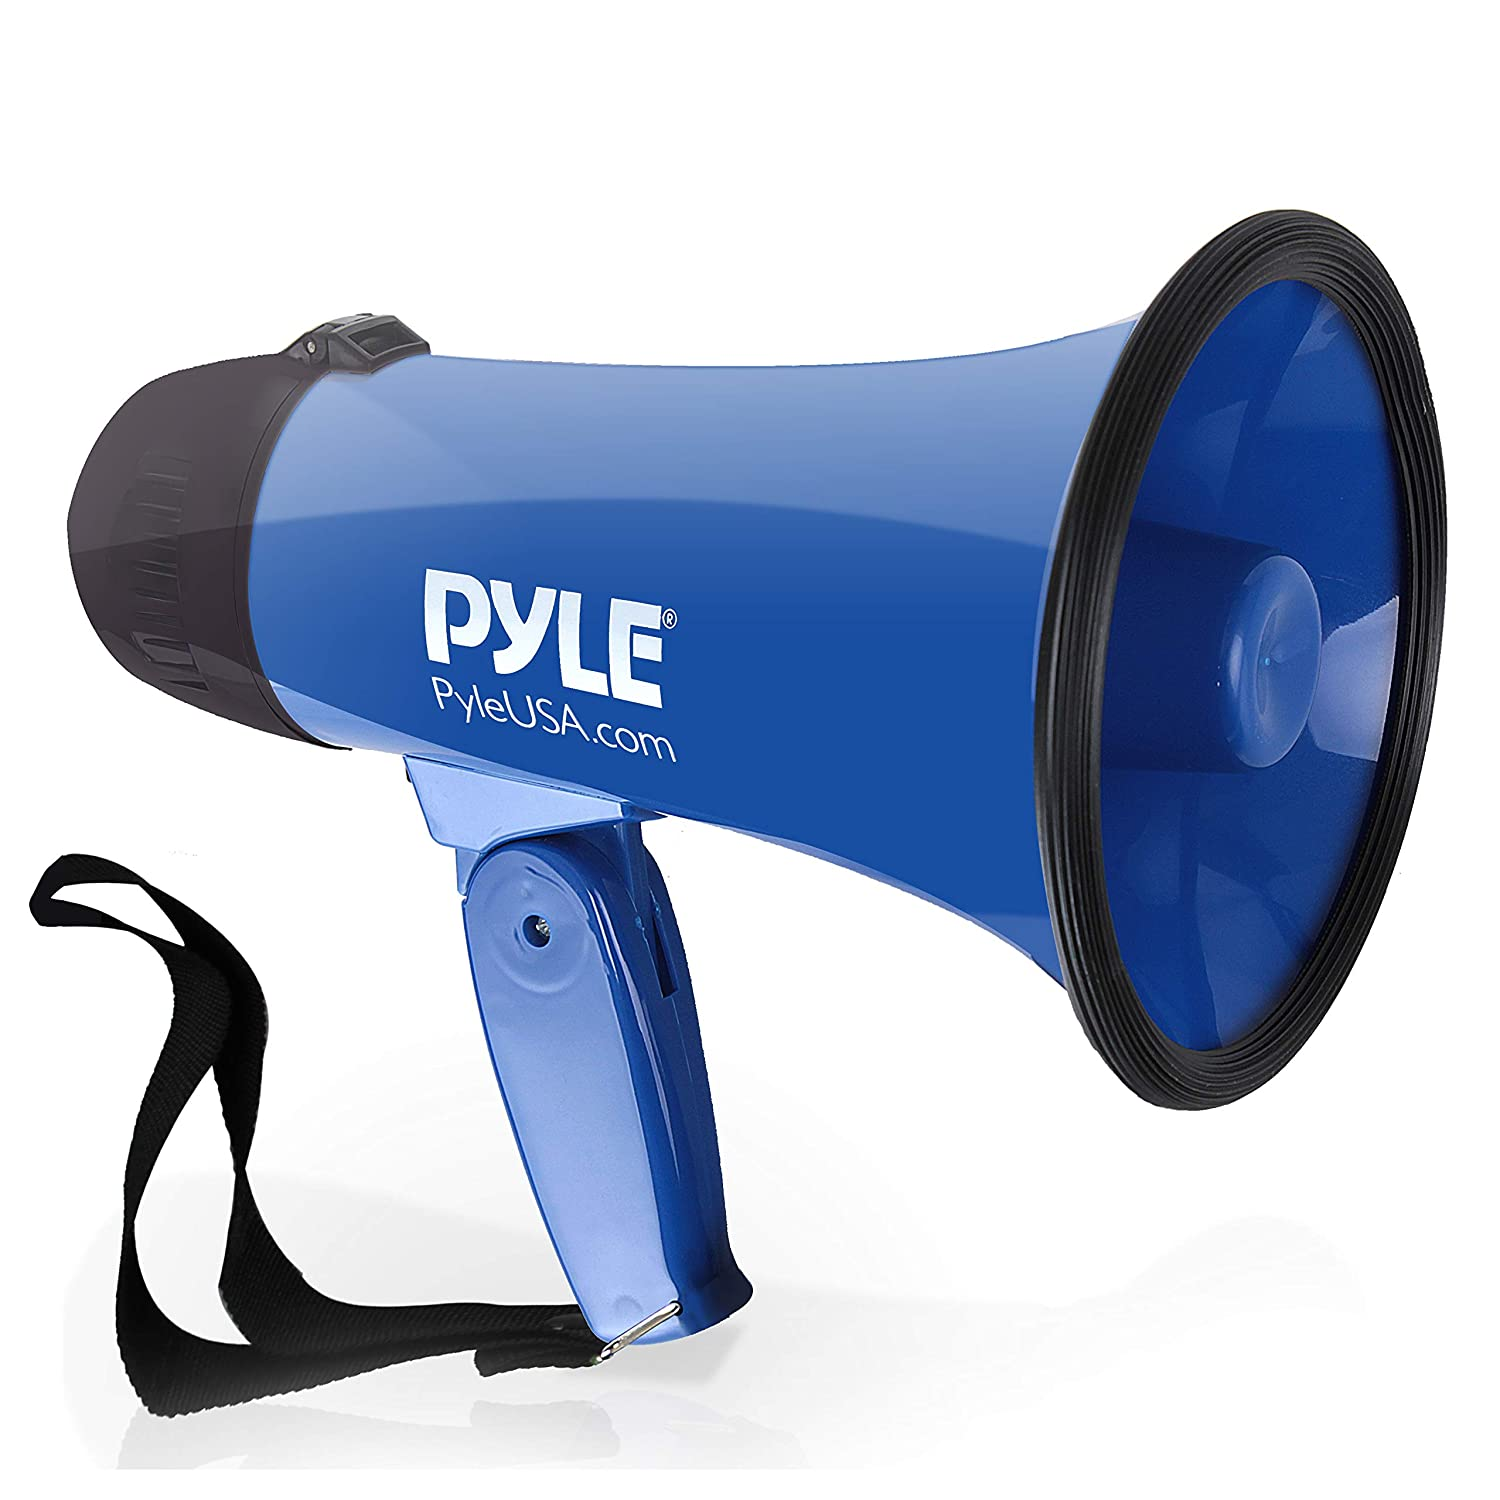 Portable Megaphone Speaker Siren Bullhorn - Compact Battery Operated 20 Watt Power, Microphone, 2 Modes, PA Sound Foldable Handle Cheerleading Police Use - Pyle PMP21BL (Black) Sound Around